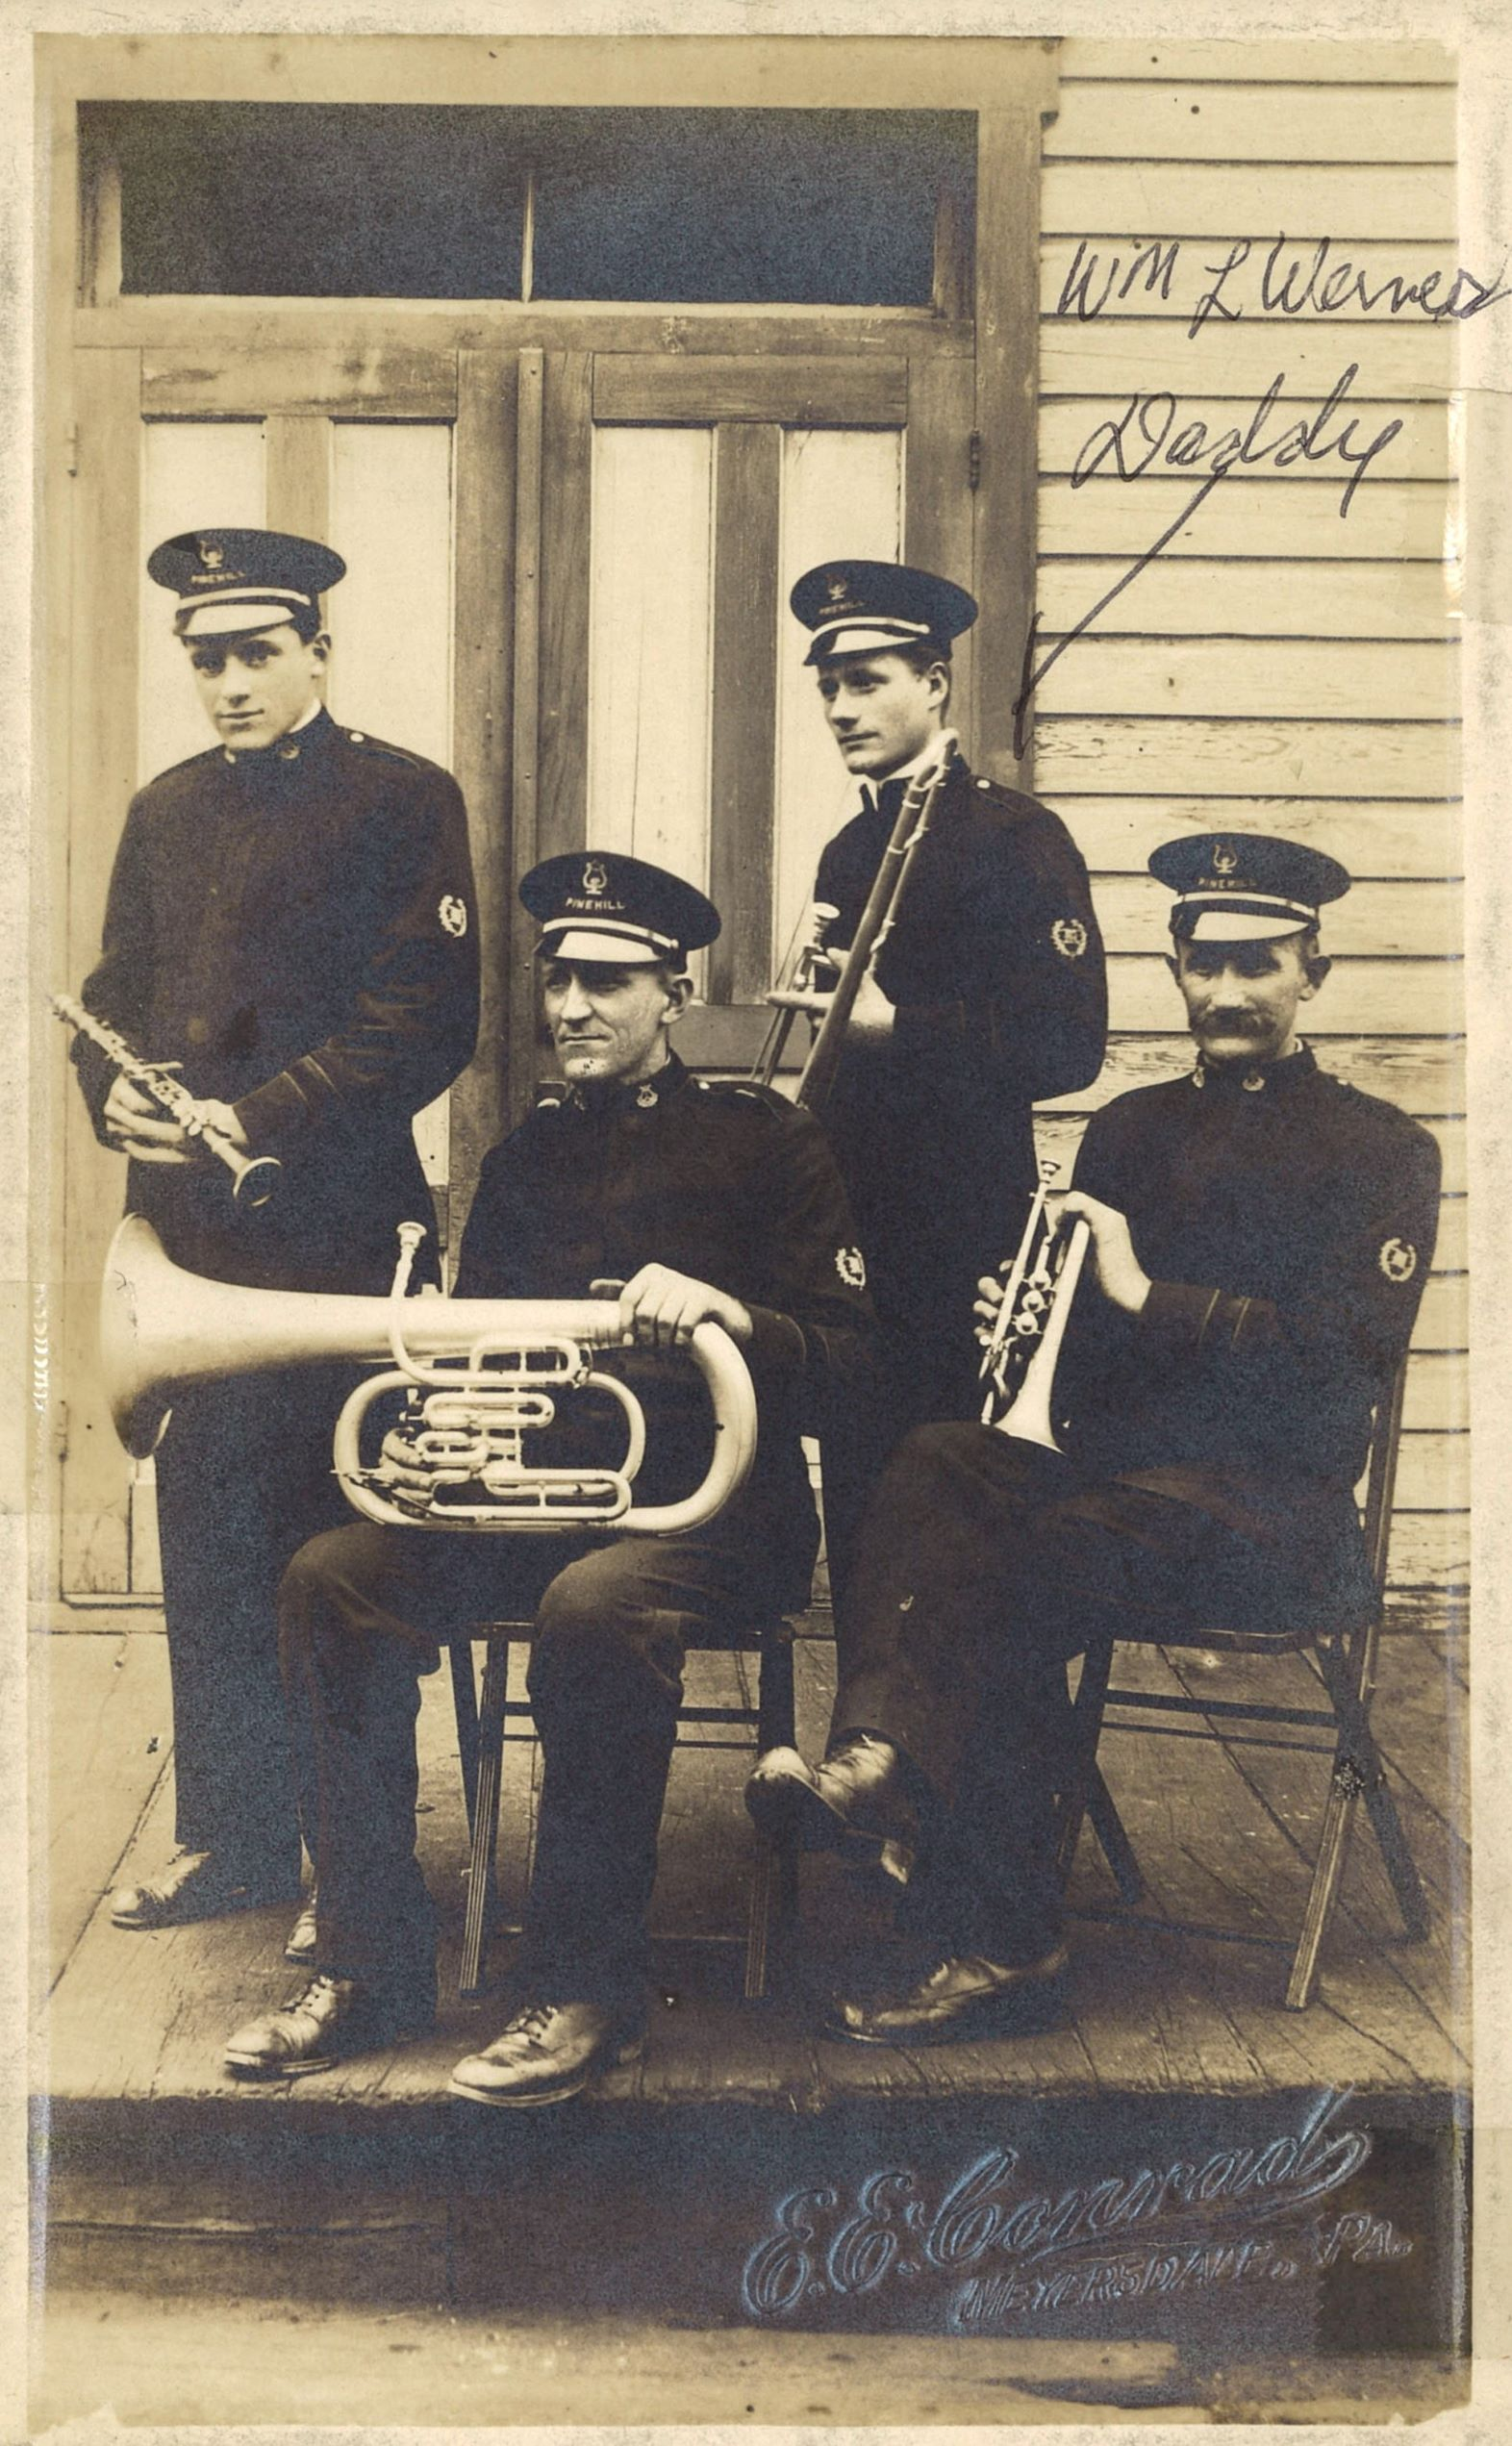 Members of the Miner's Concert Band